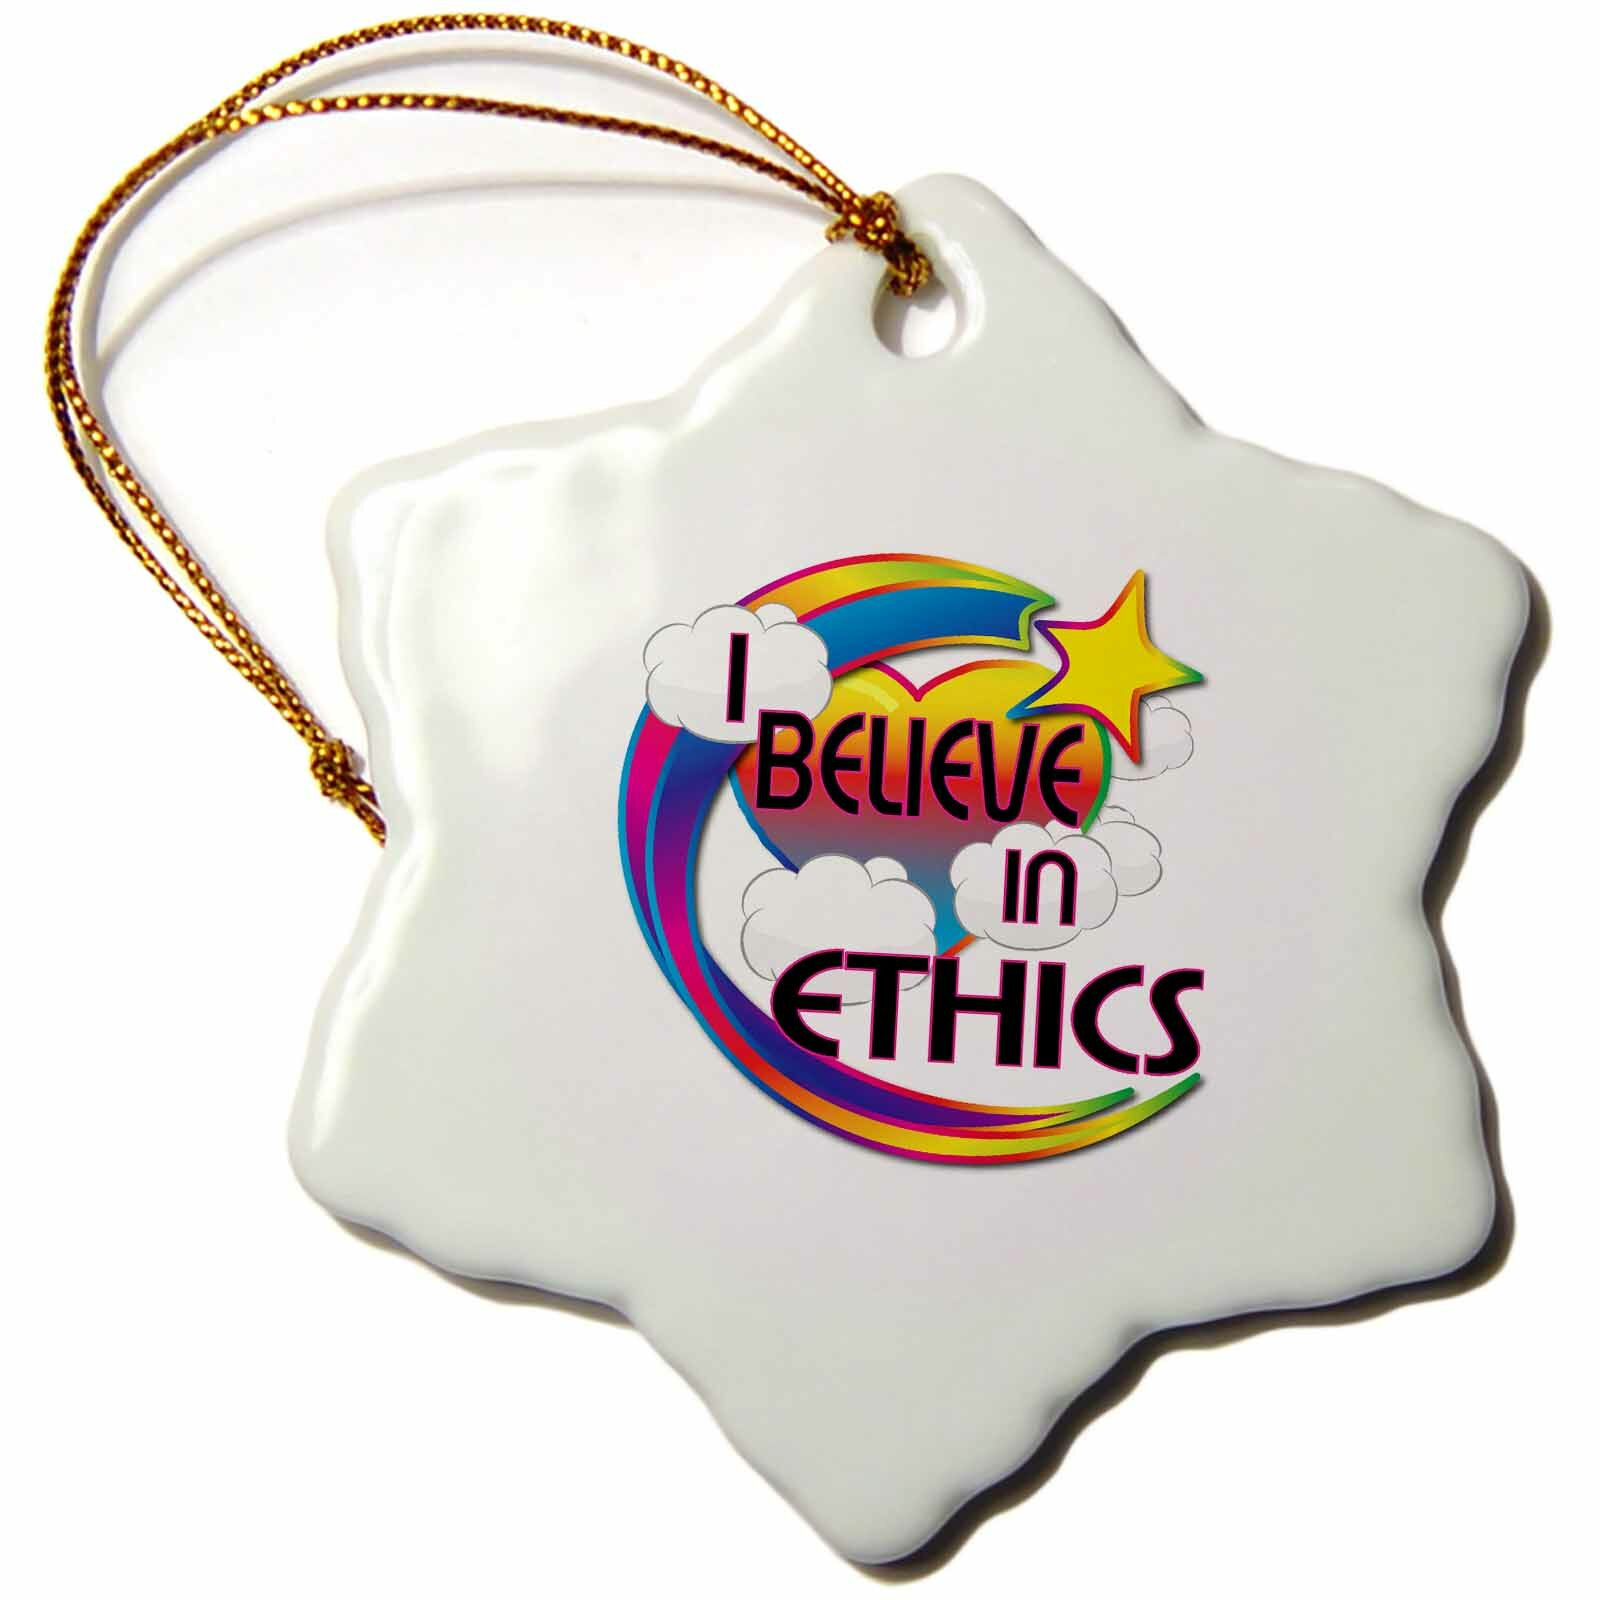 The Holiday Aisle I Believe In Ethics Cute Believer Design Snowflake Holiday Shaped Ornament Wayfair